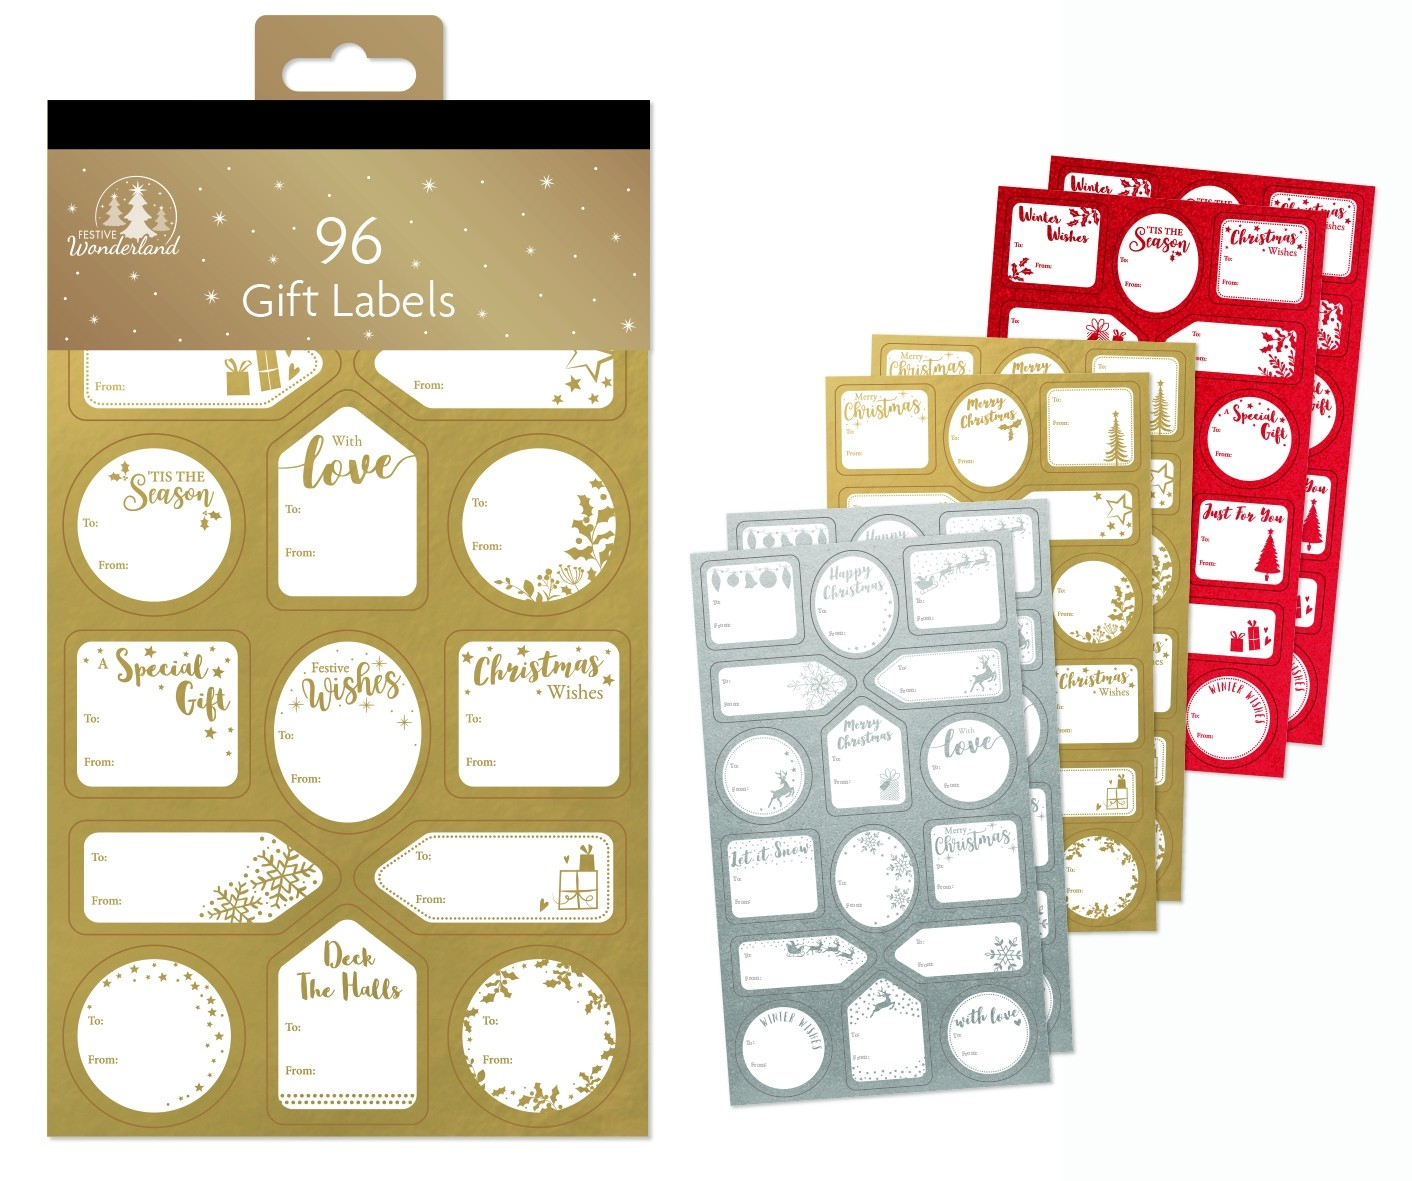 Sticker gift labels - gold, silver, red